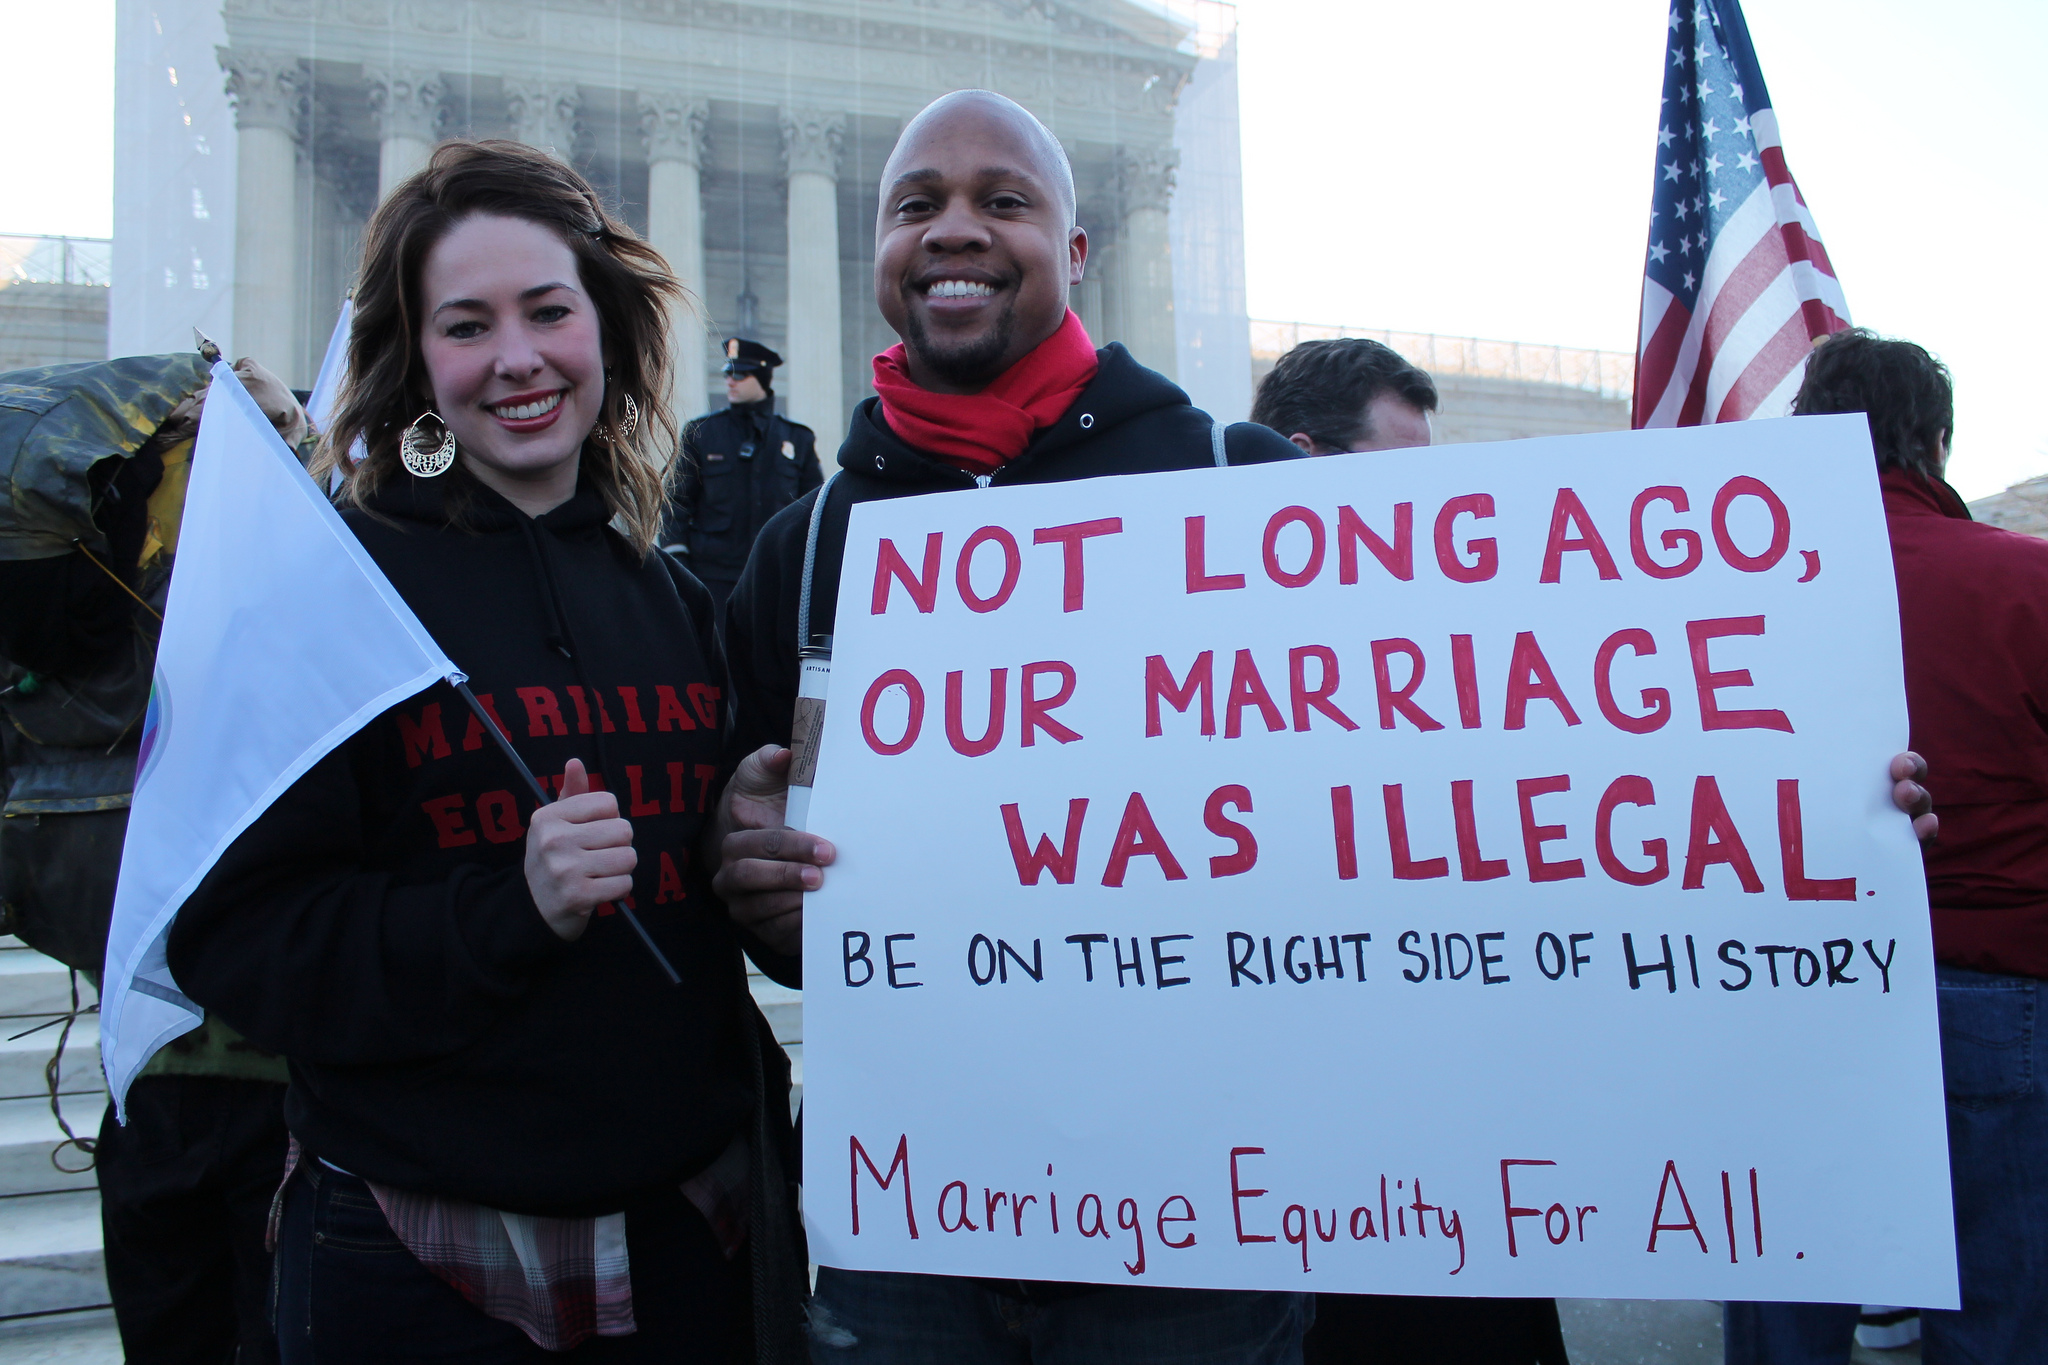 religious freedom and marriage equality